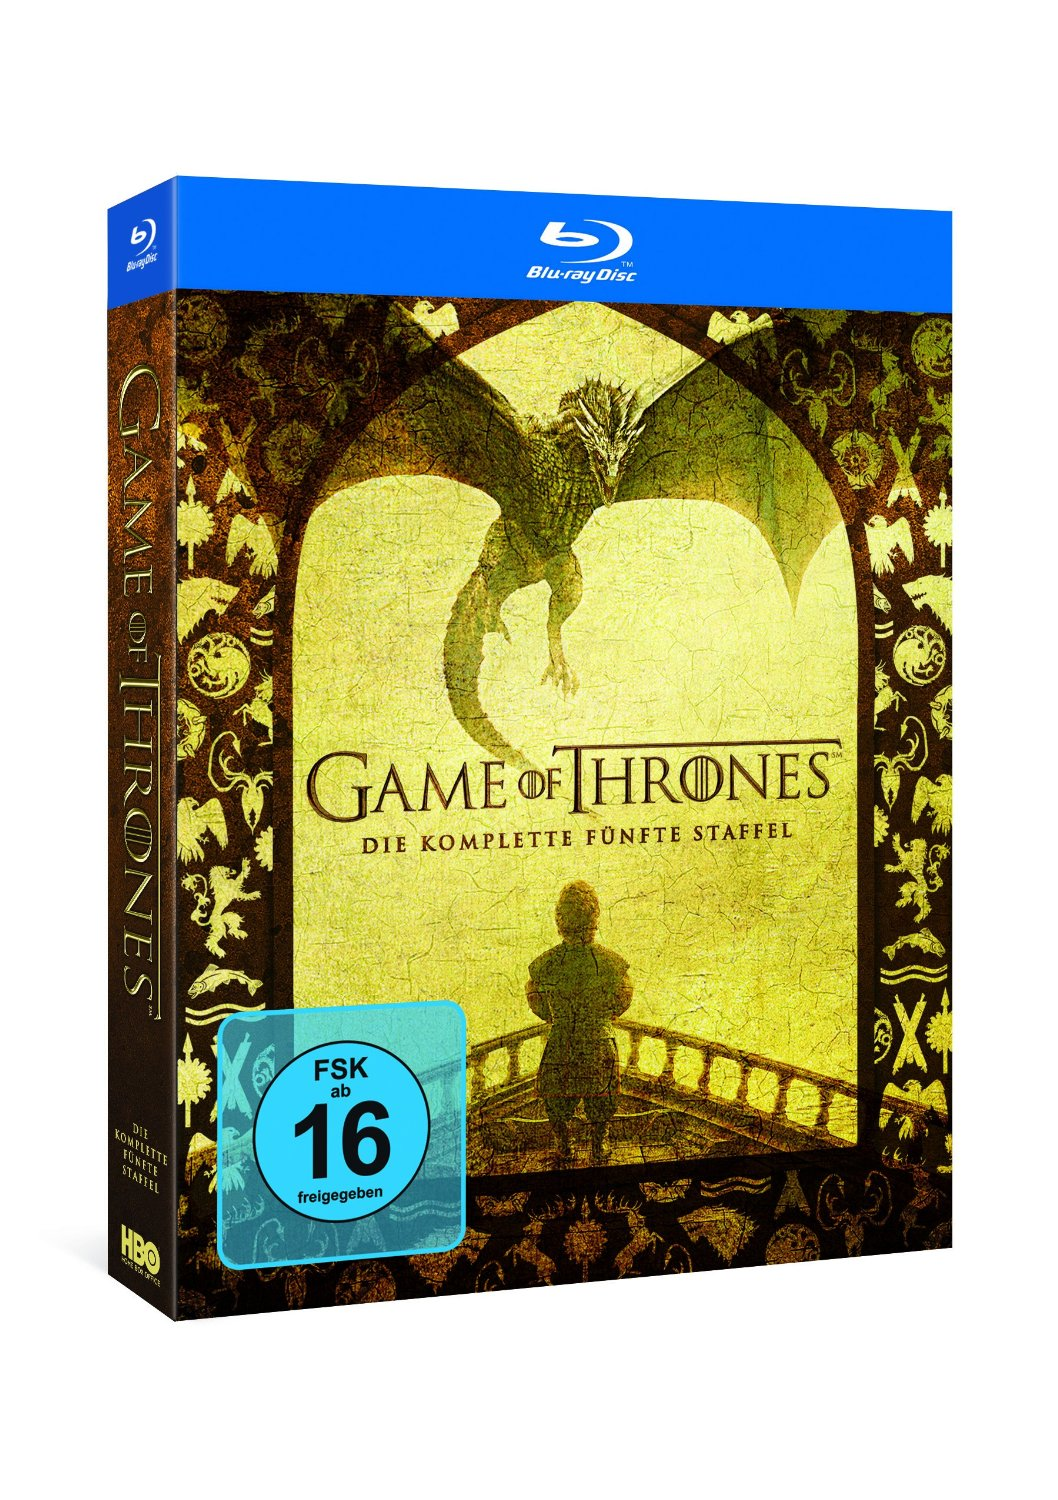 Preisvergleich Game of Thrones staffel 5 EAN 5051890298881